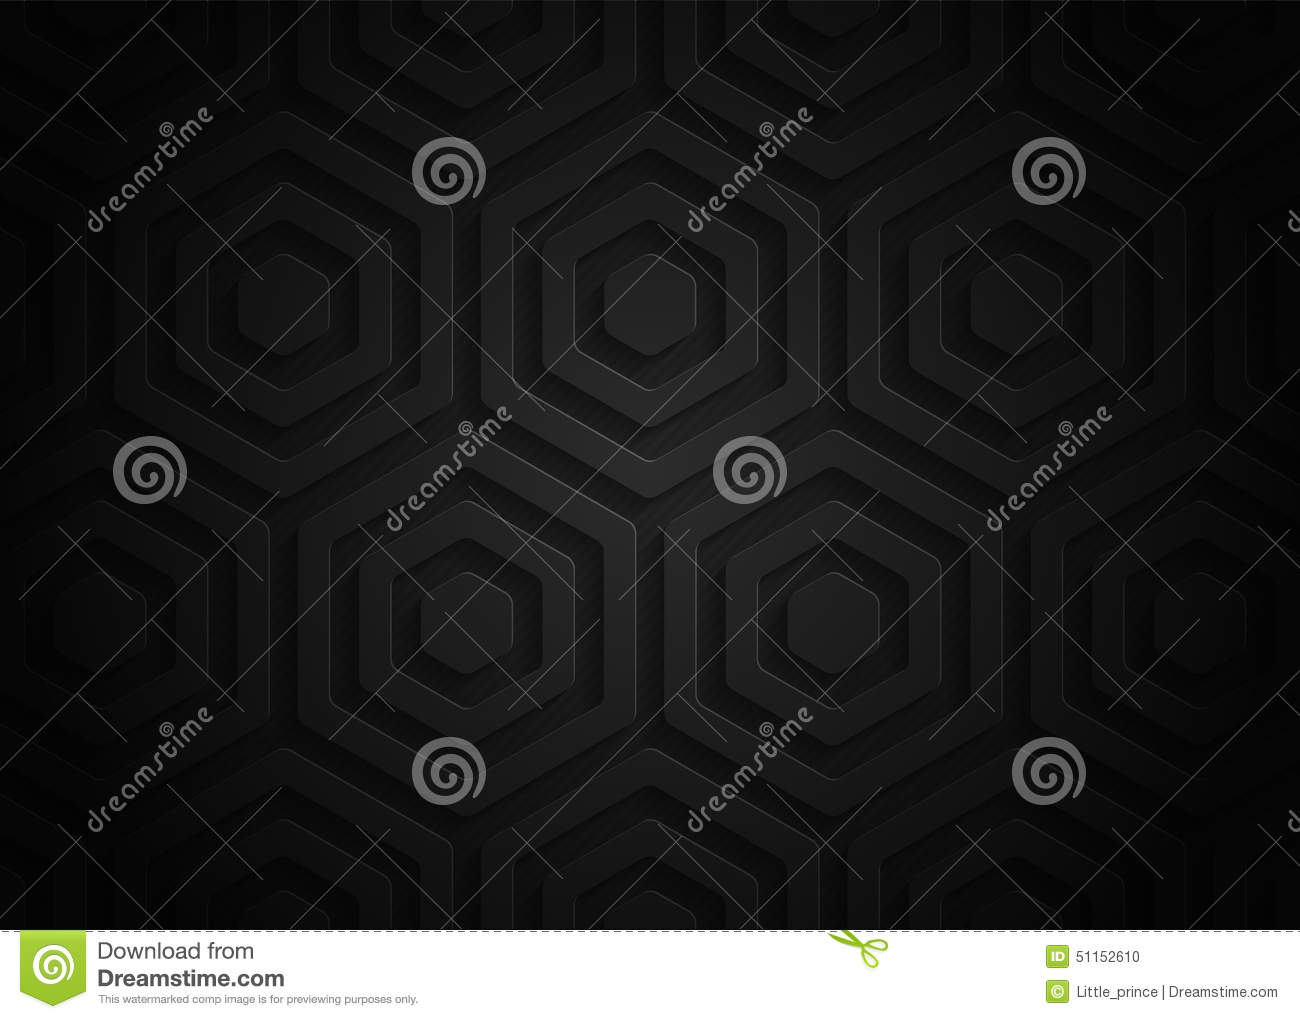 master thesis abstract template background